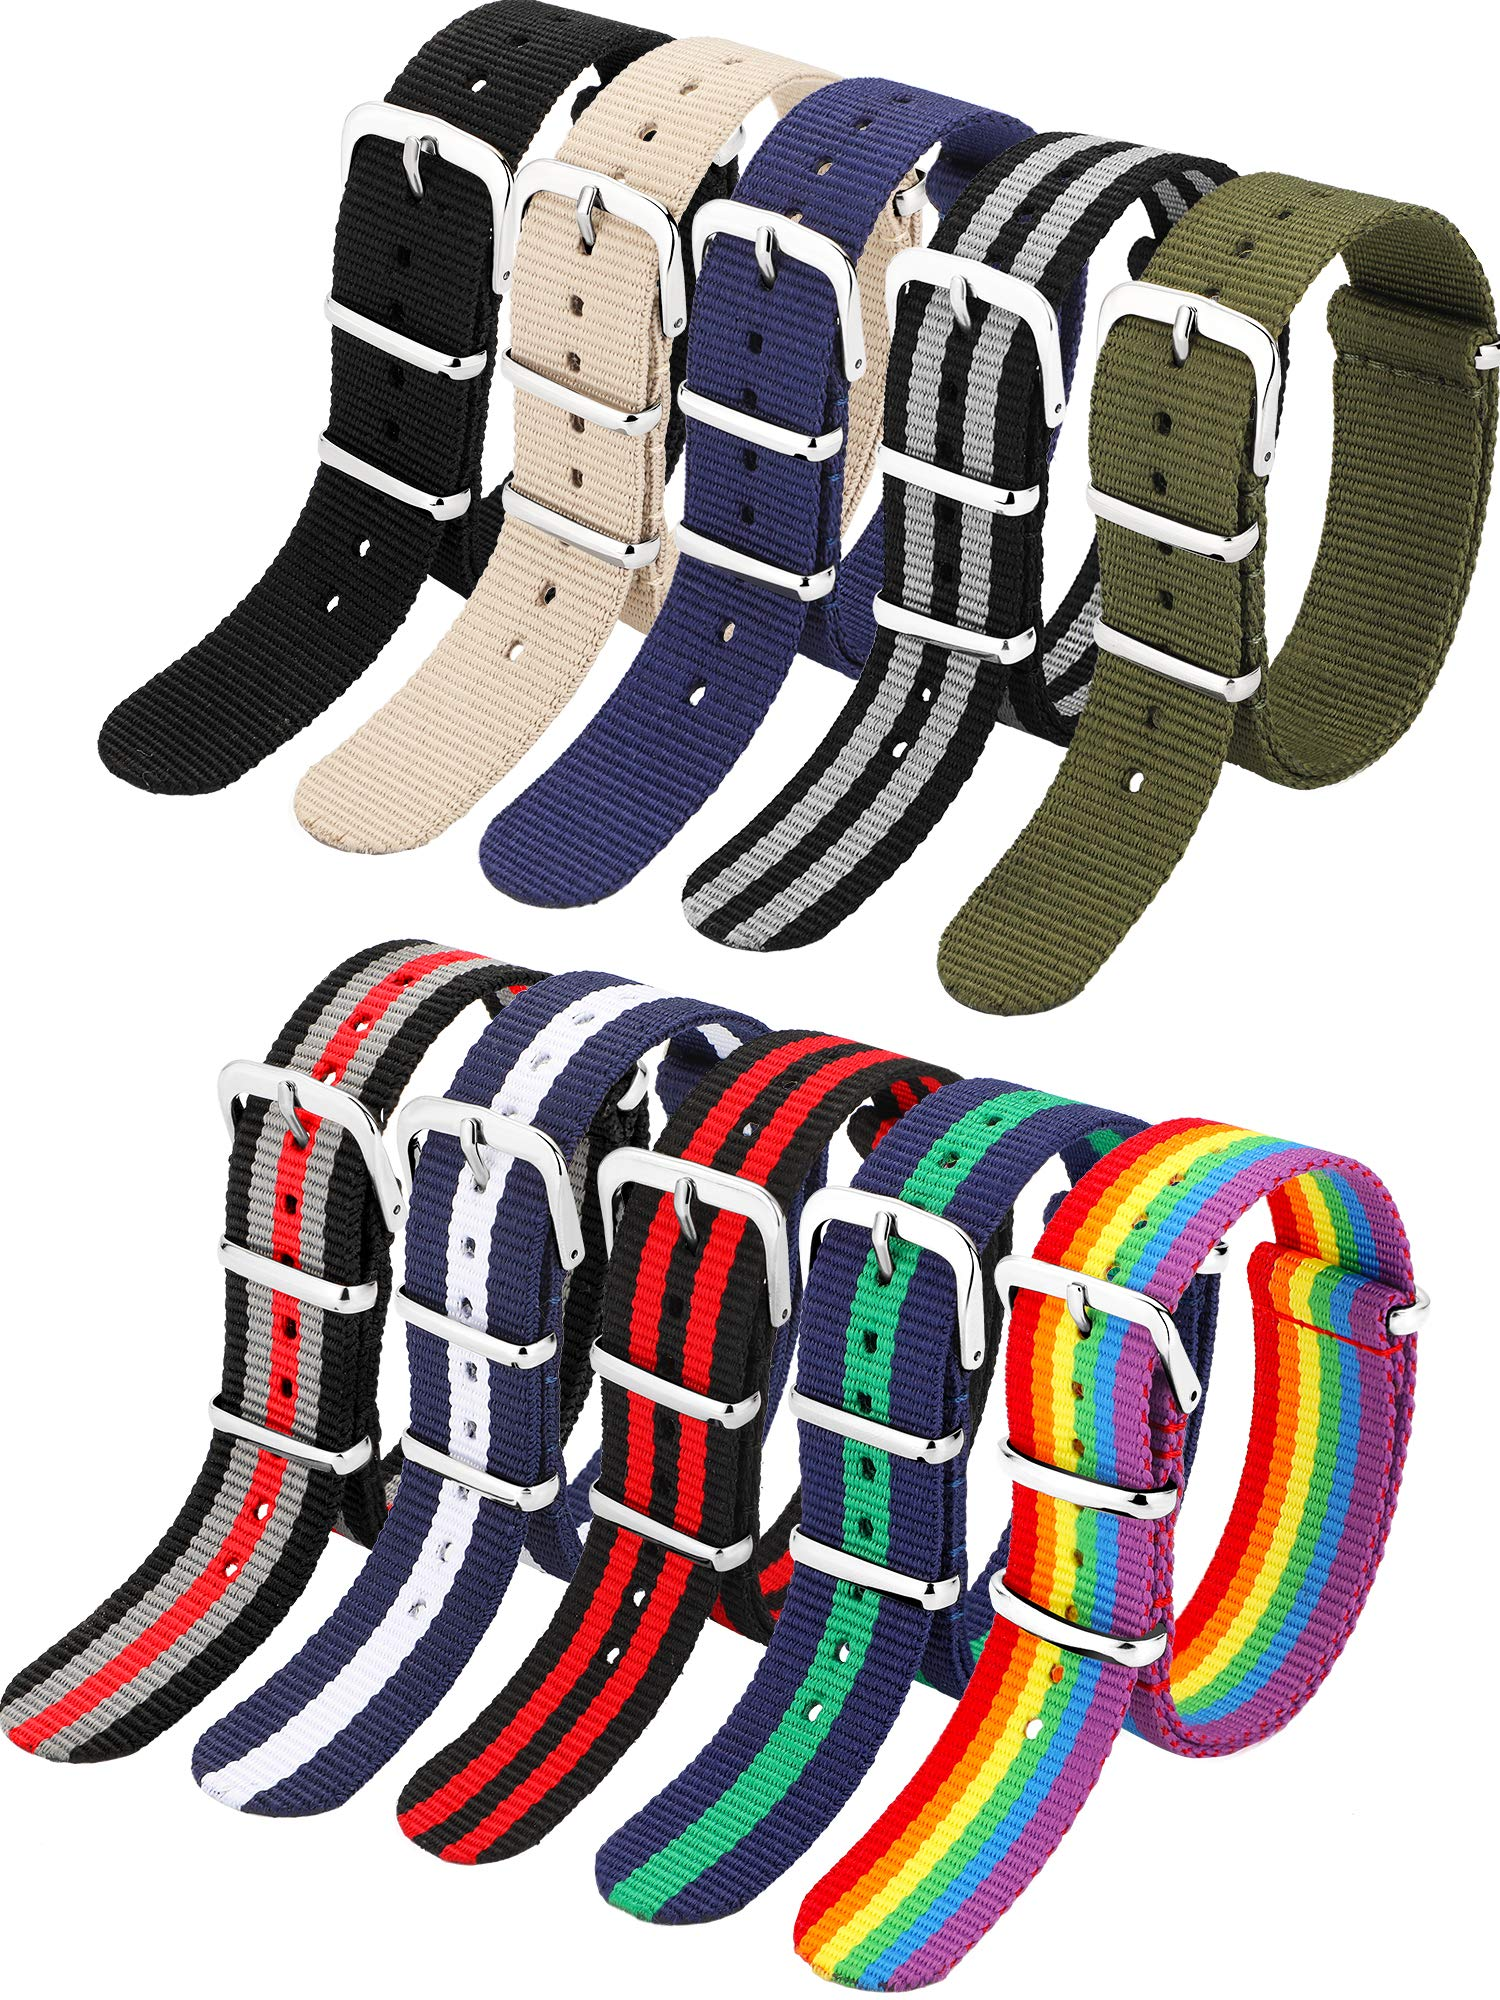 10 Pieces Nylon Watch Band Watch Straps Replacement with Stainless Steel Buckle for Men and Women's Watch Band Replacing 18 mm (Classic Colors)